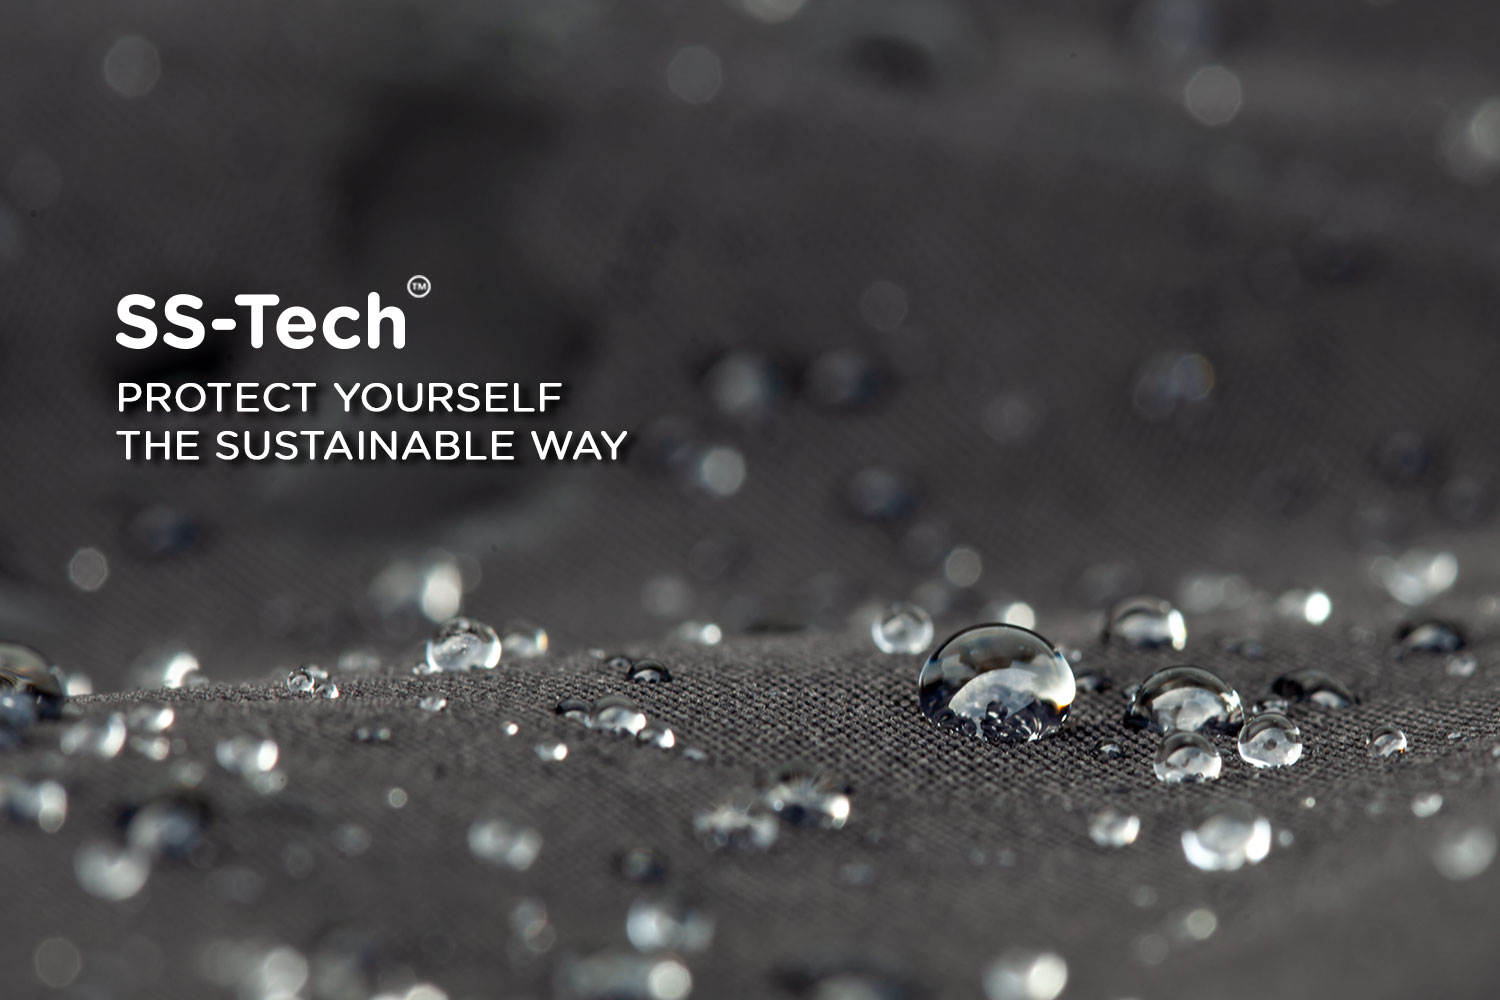 Close up of water droplets on Superstainable patented fabric technology SS Tech